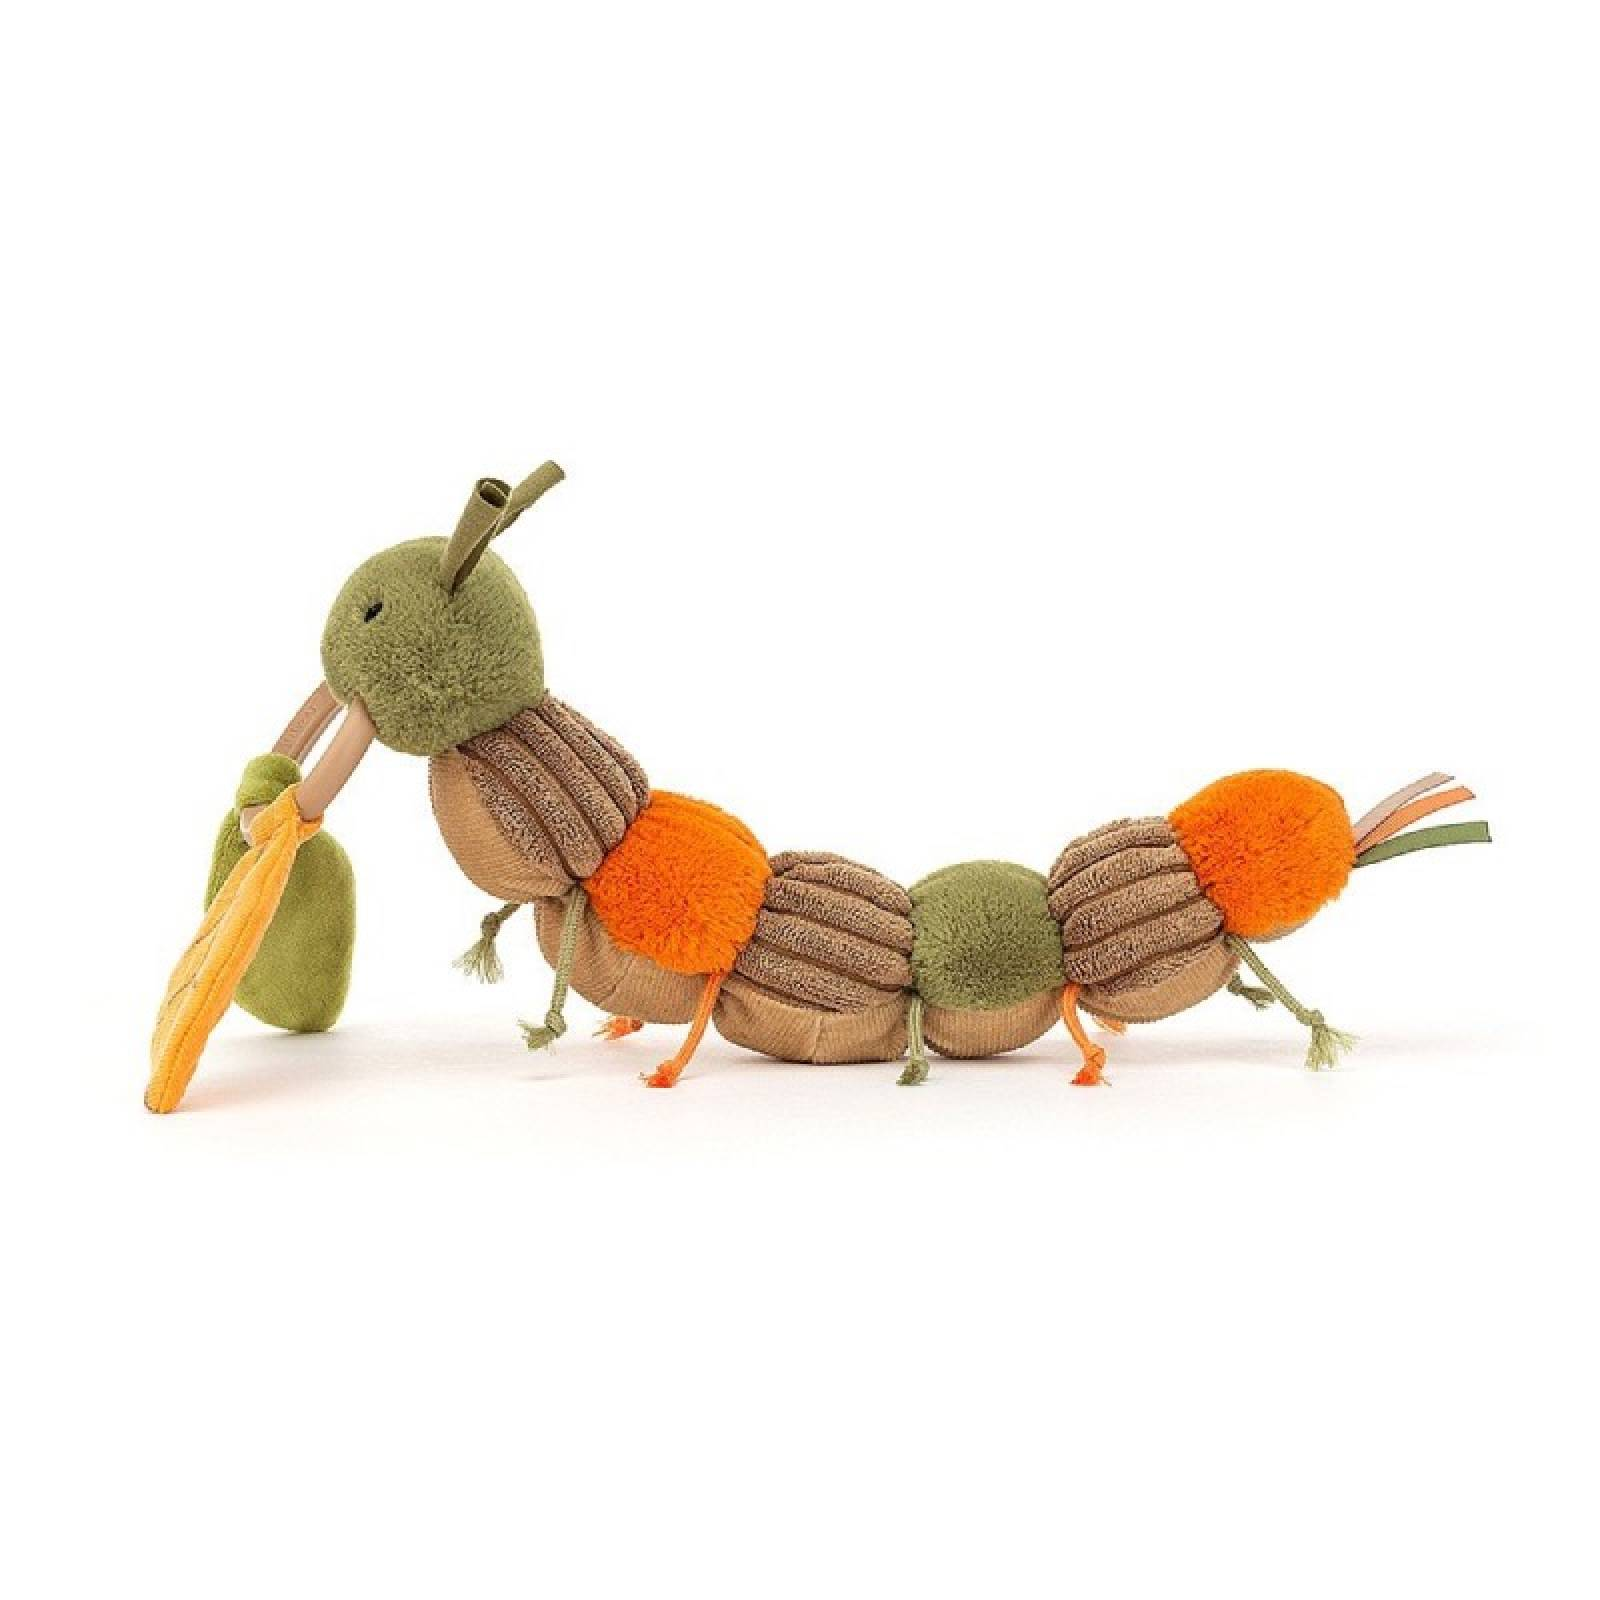 Christopher Caterpillar Soft Activity Toy By Jellycat thumbnails